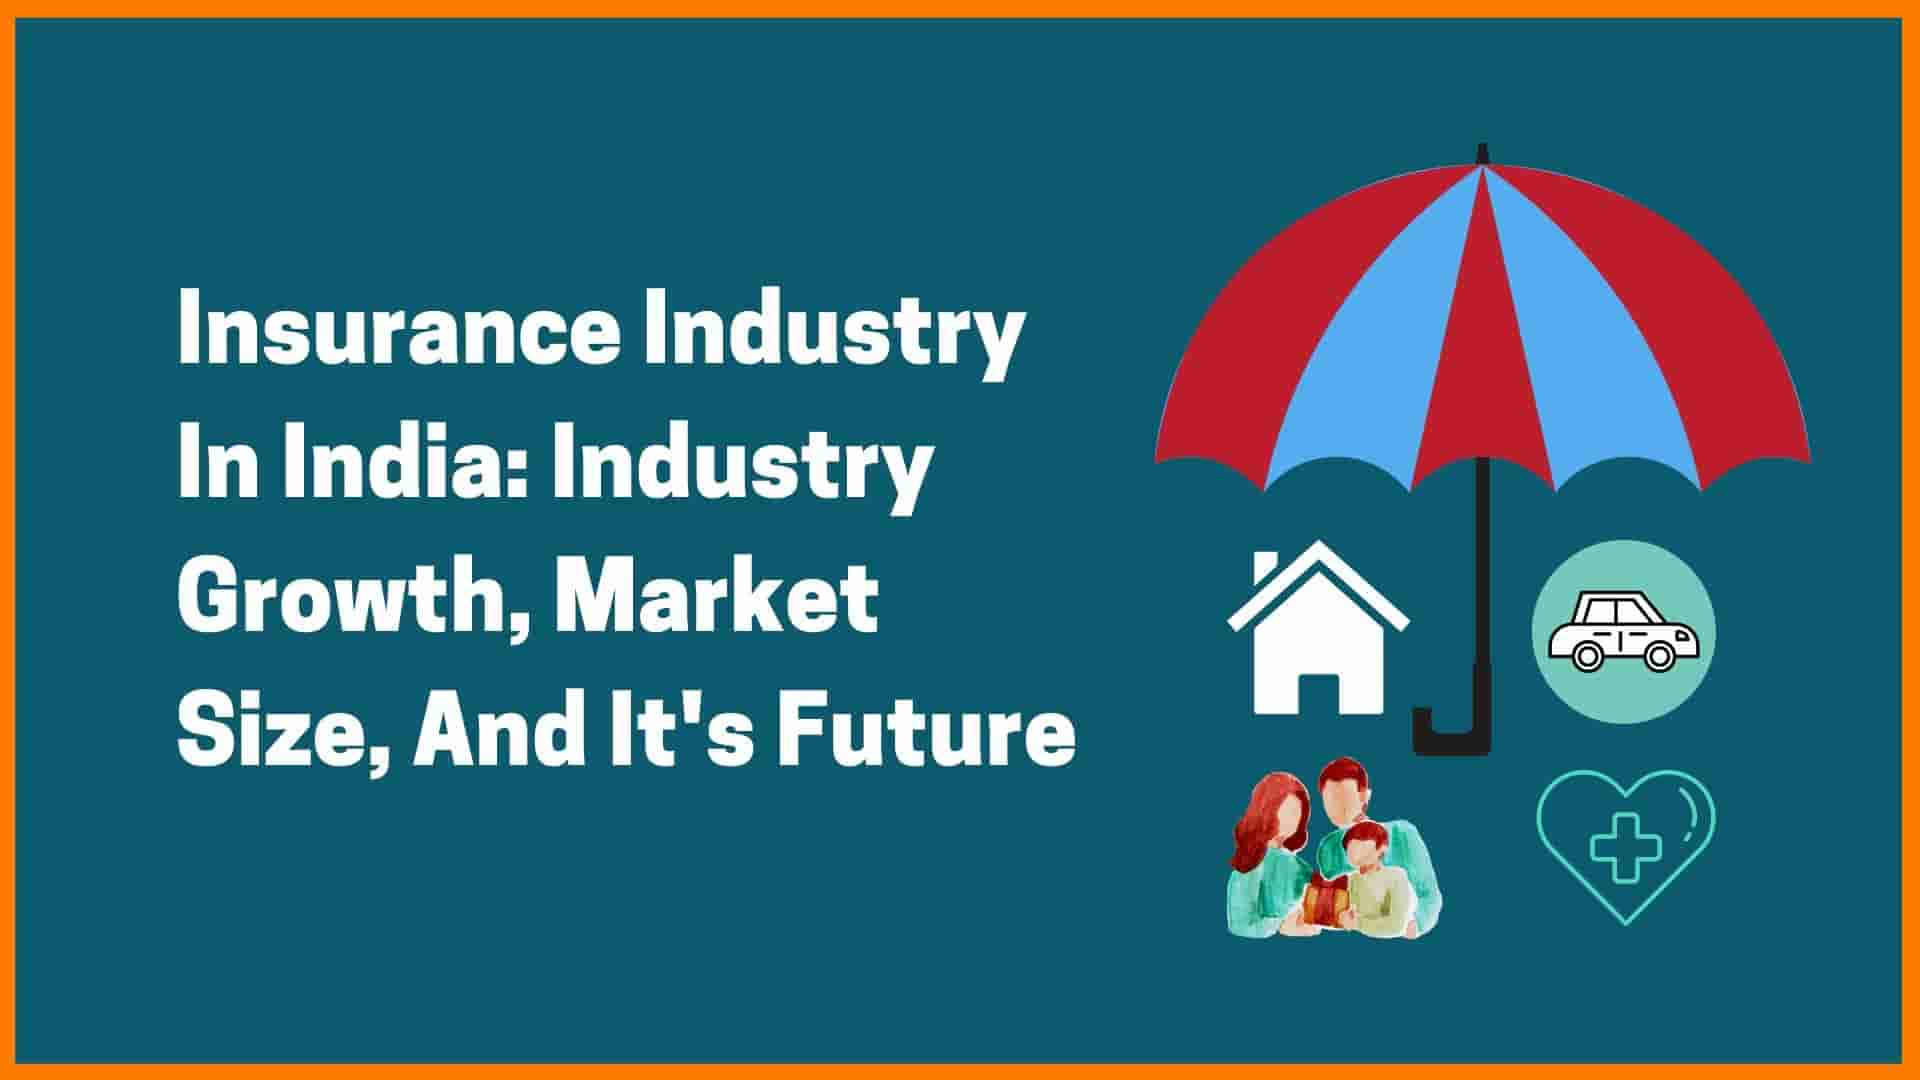 The Insurance Industry In India: Growth, Market Size, And Its Future